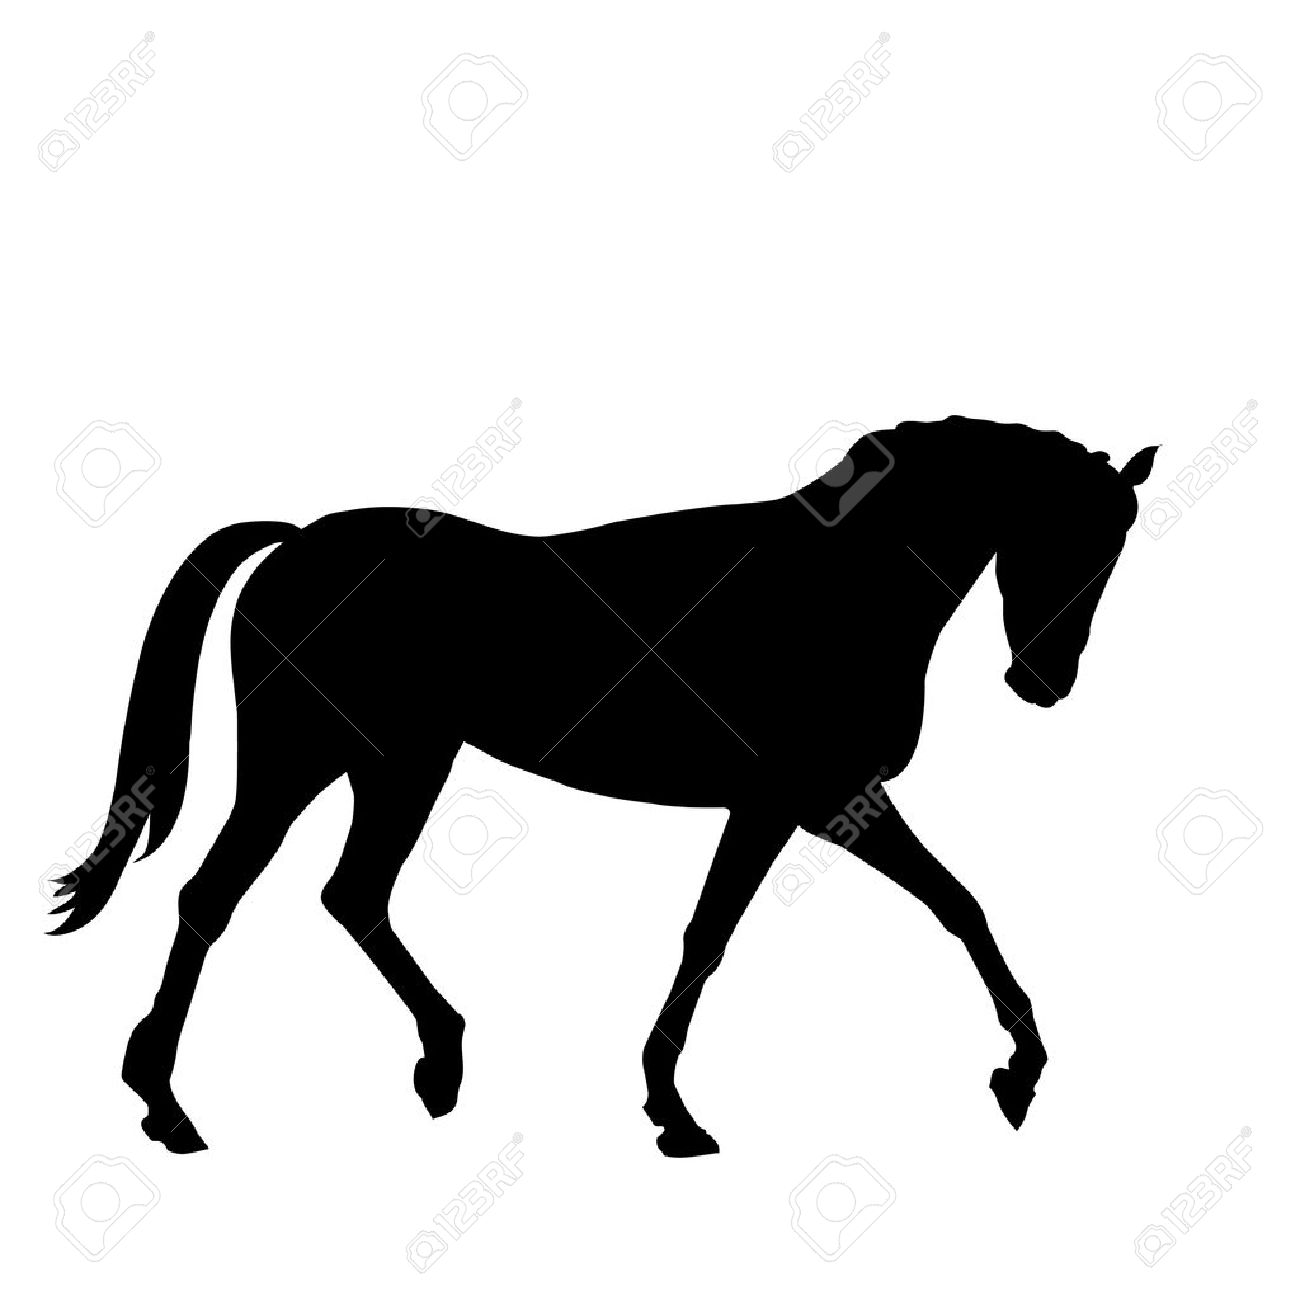 beautiful black horse silhouette isolated on white background Stock Vector - 18959089